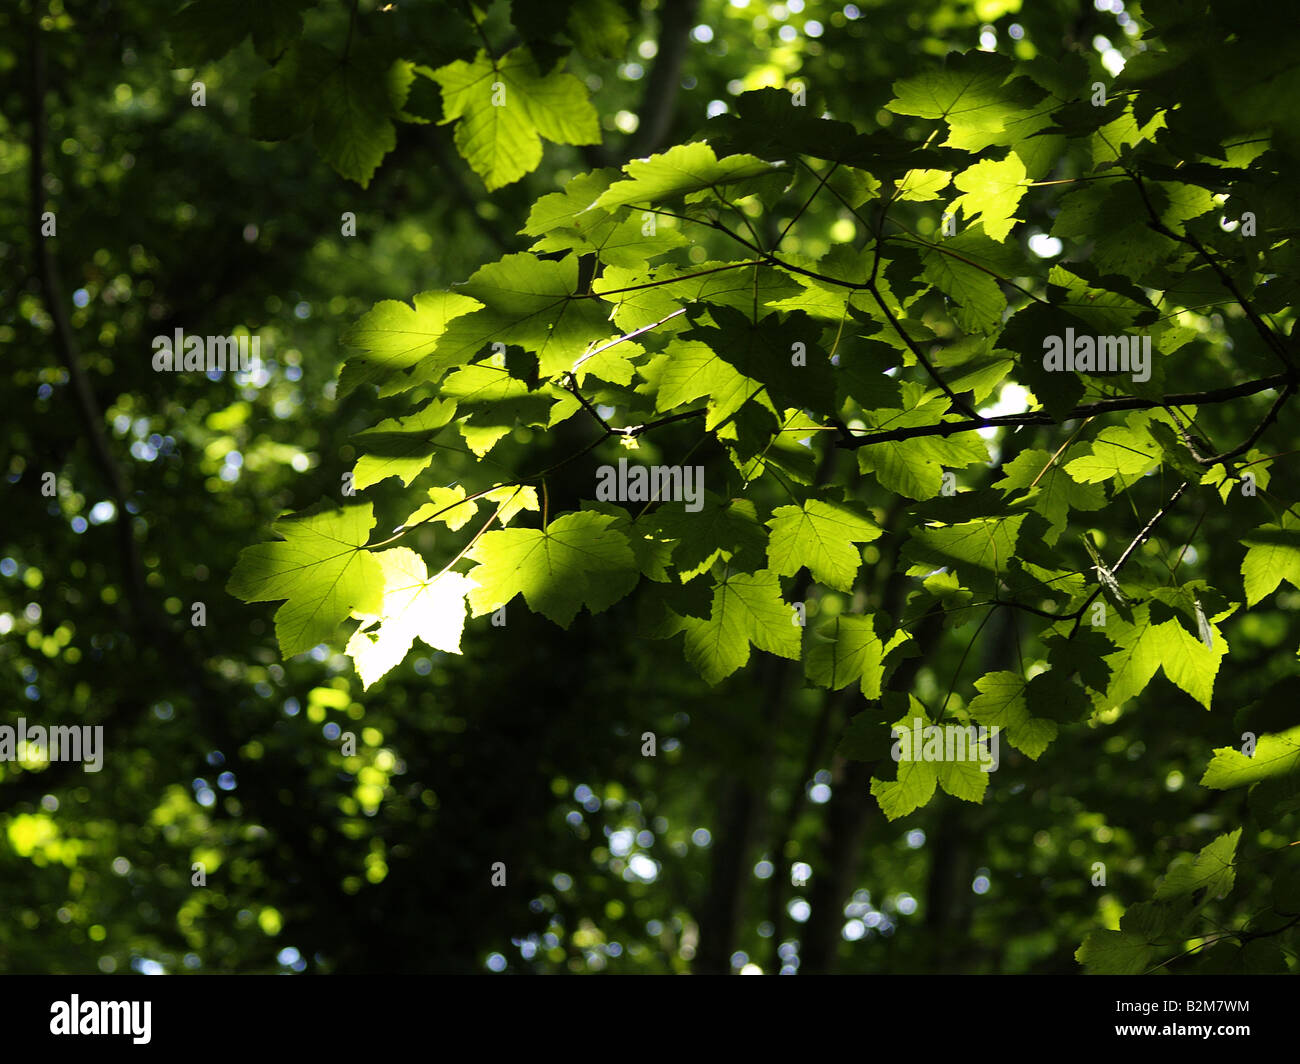 Sun shinning through the trees onto leaves - Stock Image